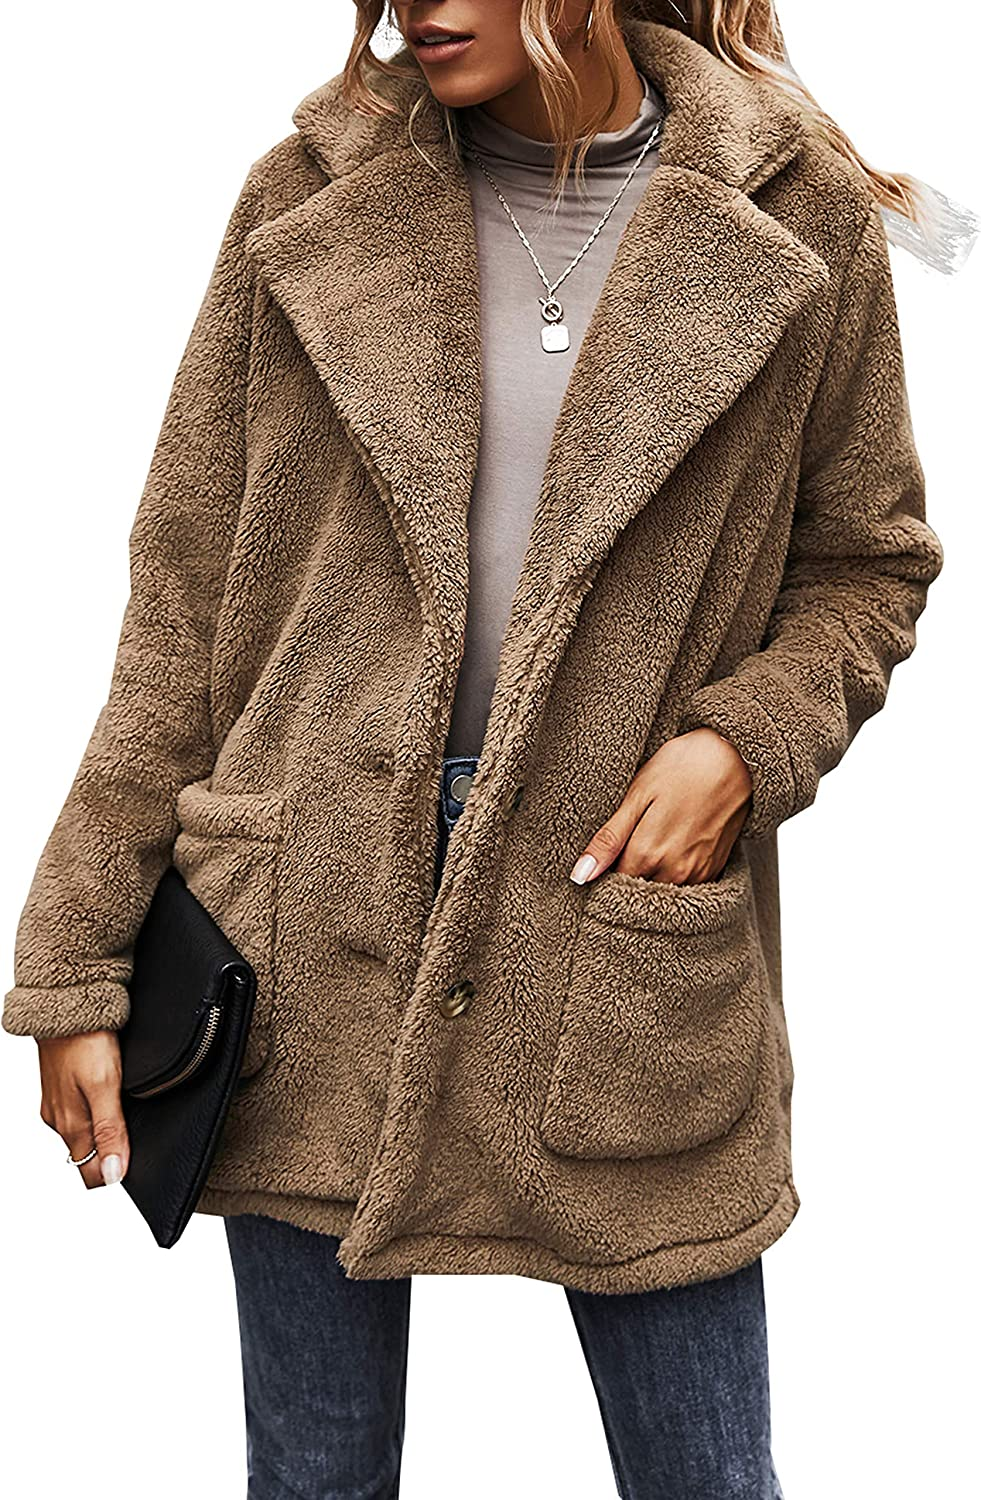 Uaneo Womens Sherpa Fleece Button Front Single Breasted Notched Lapel Teddy Coats(Khaki-S)